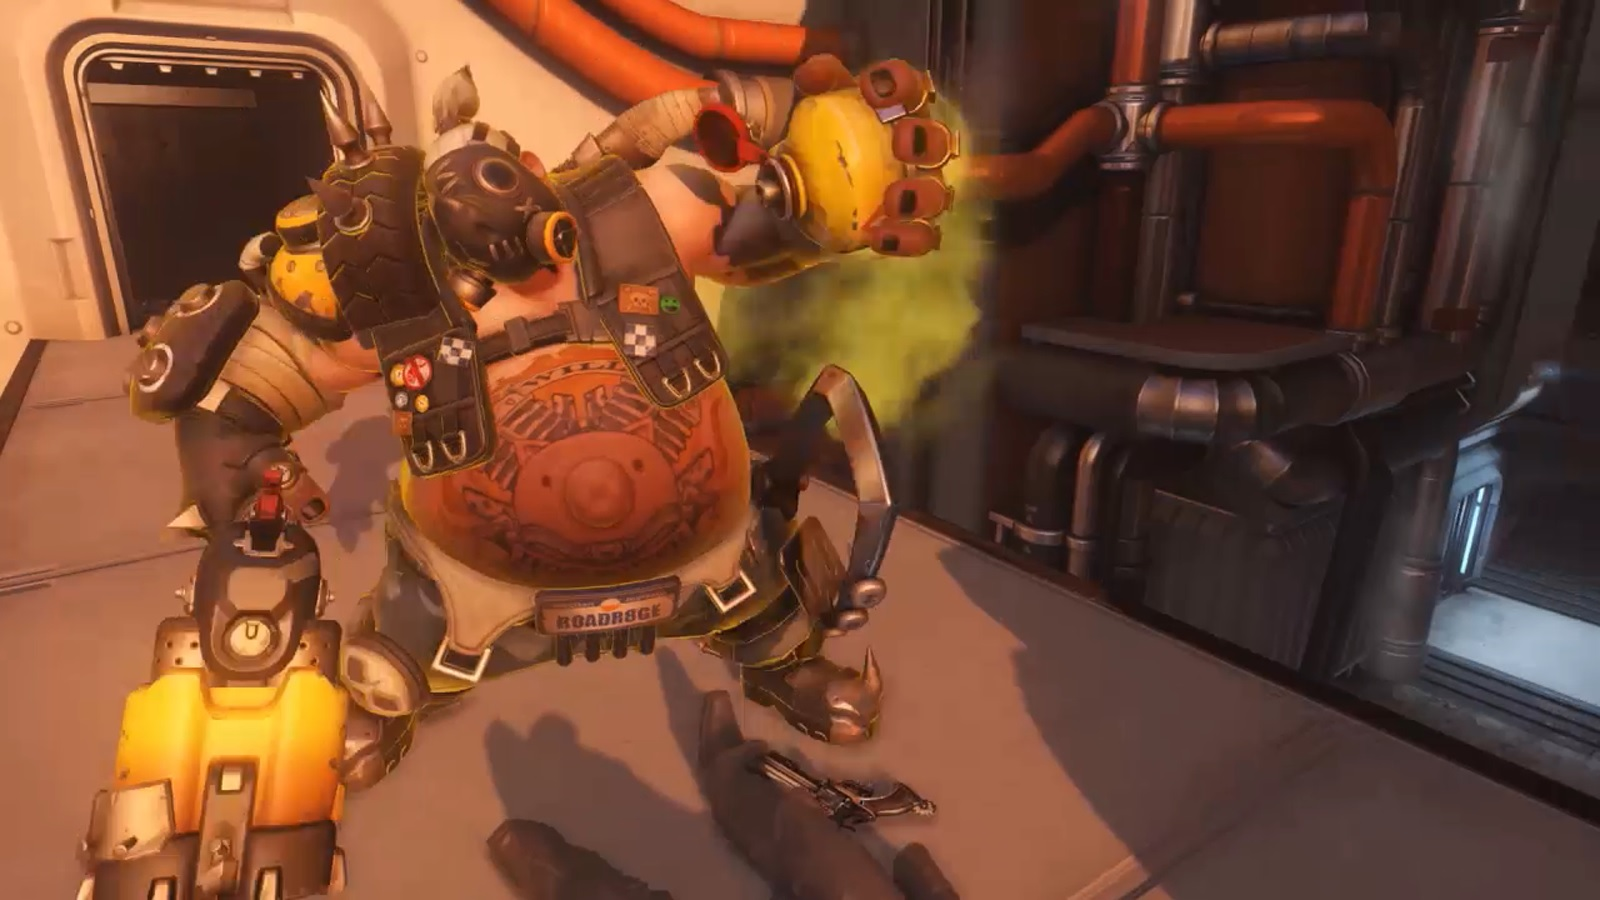 Roadhog using Take a Breather in Overwatch